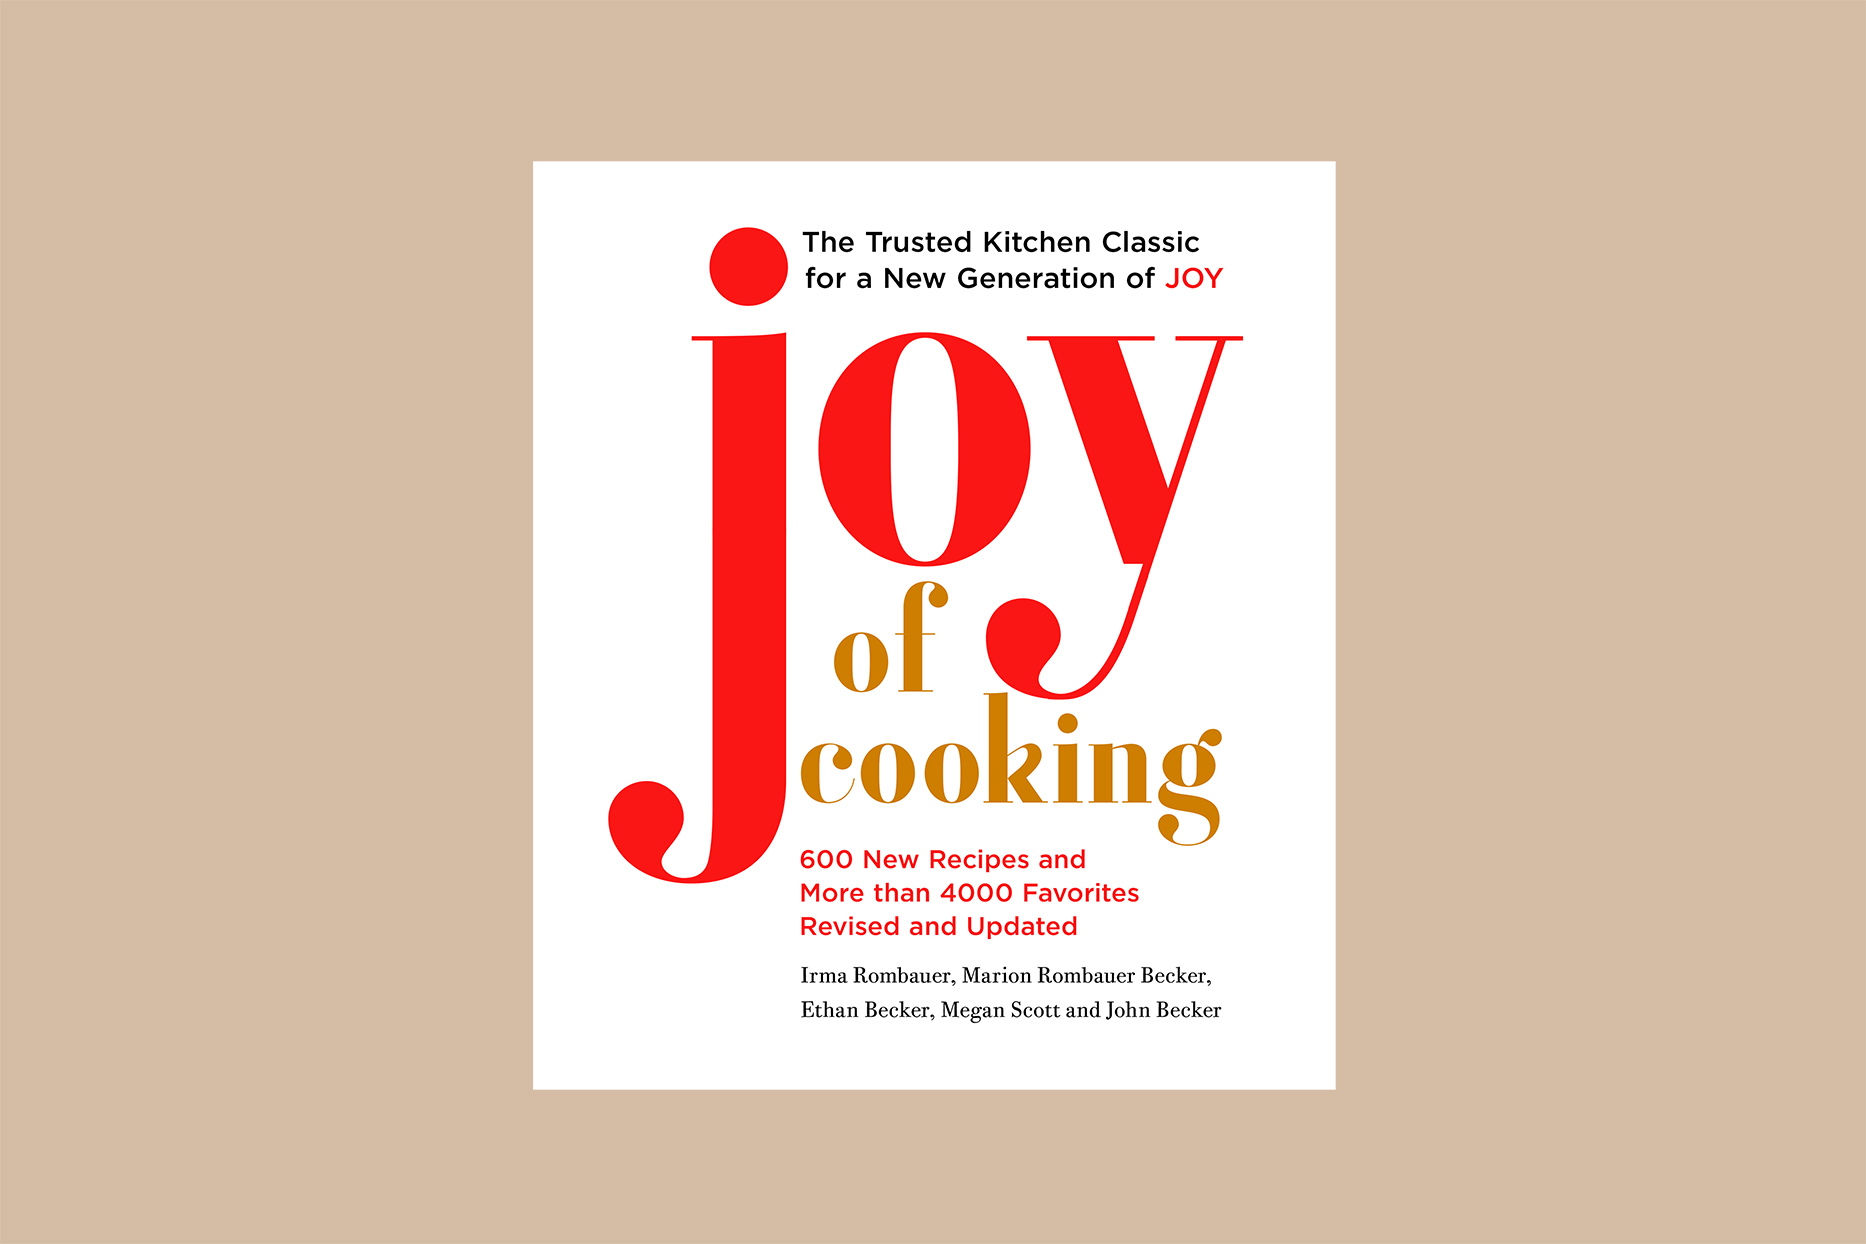 The Joy of Cooking by Irma S. Rombauer, Marion Rombauer Becker, and Ethan Becker